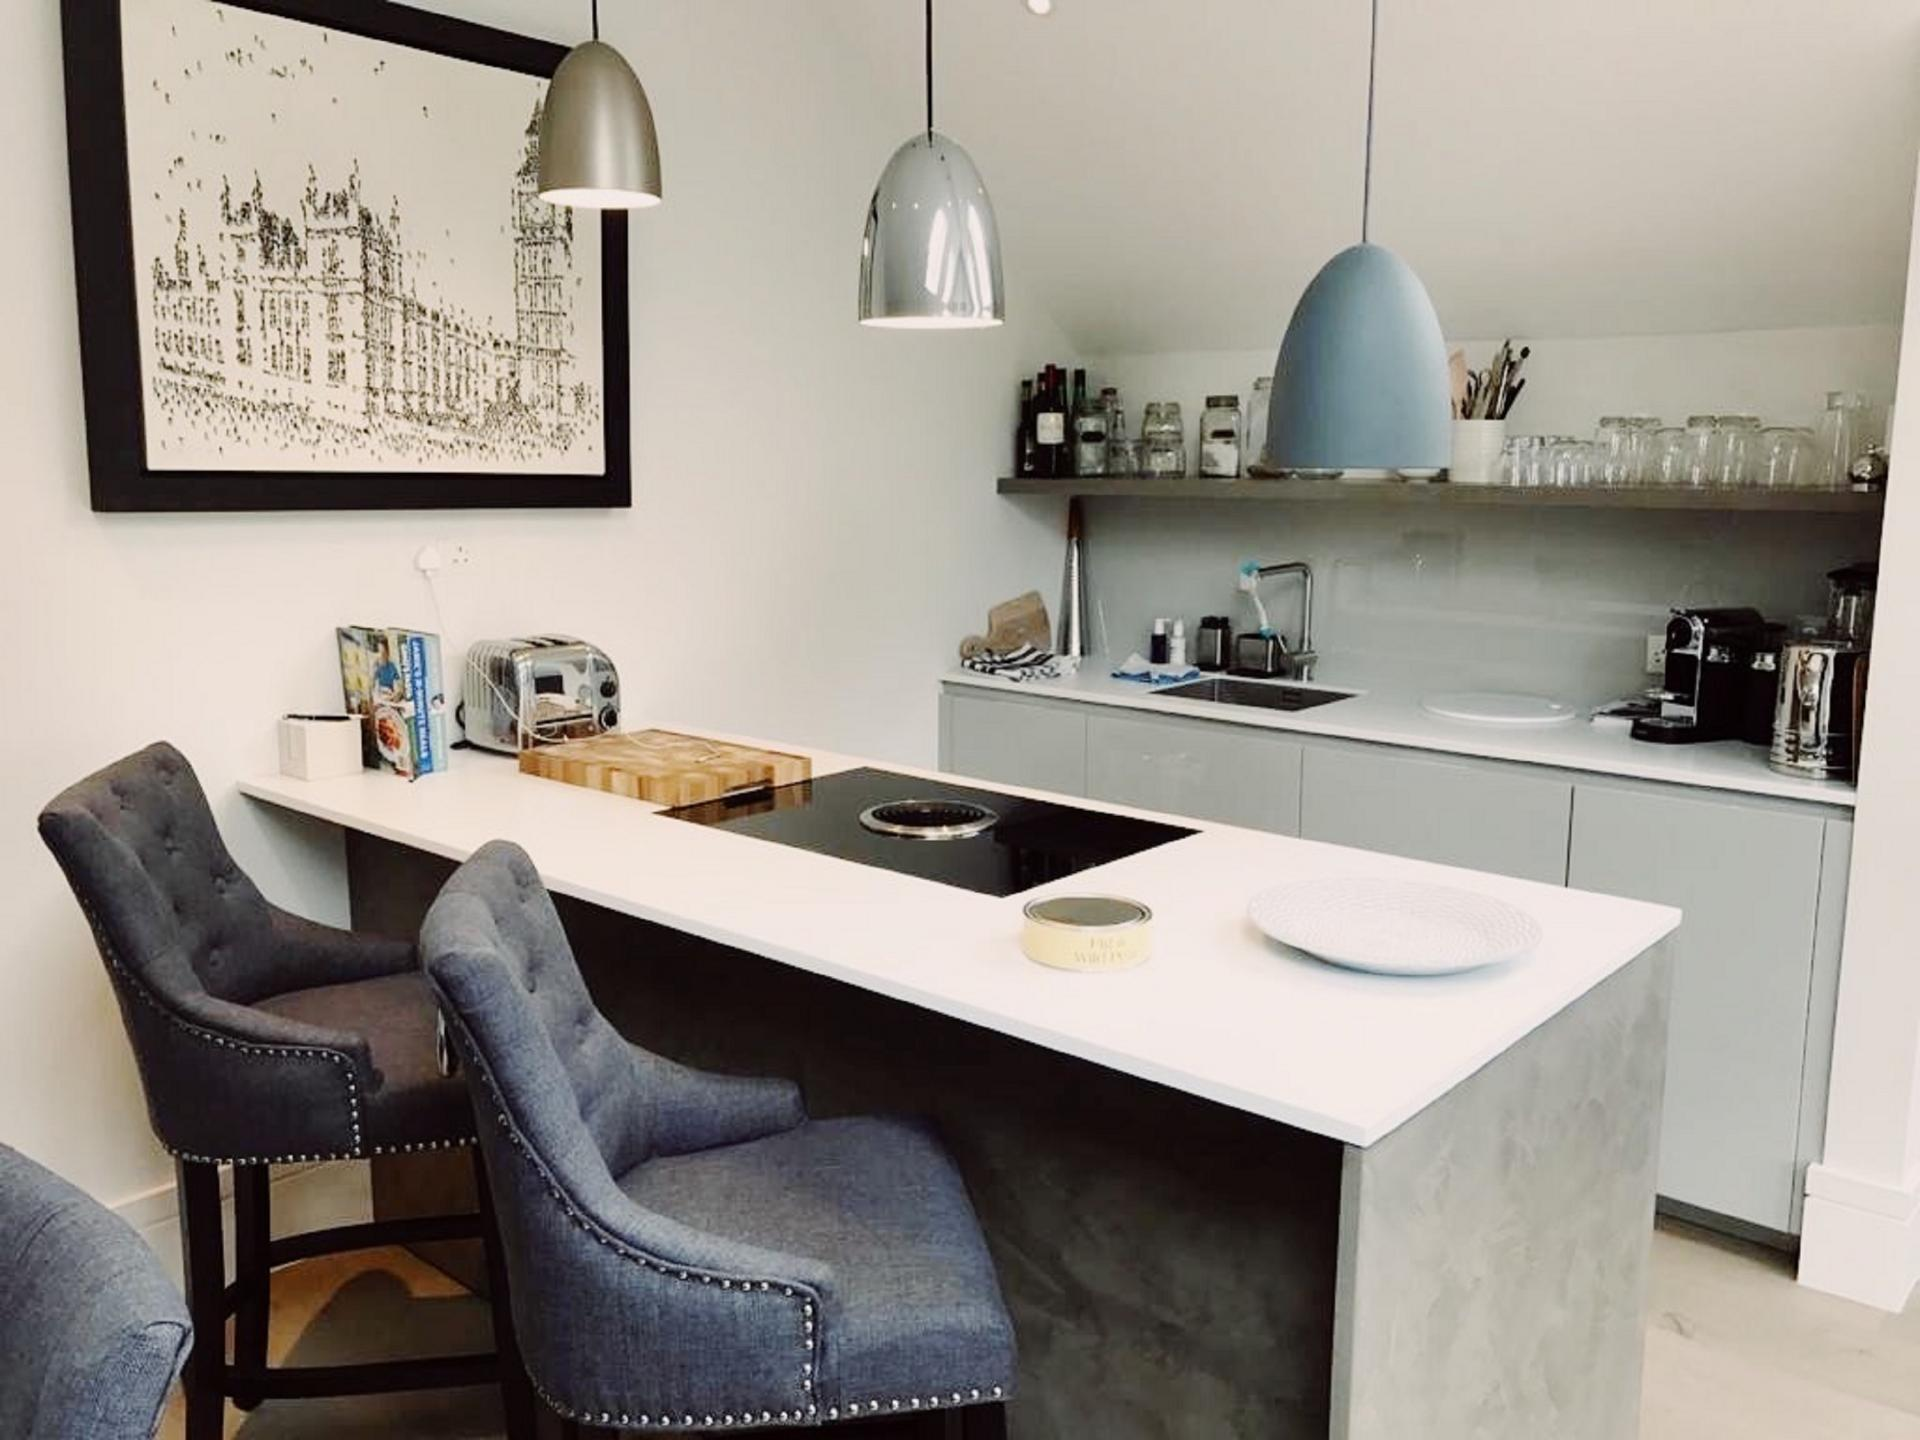 Kitchen dining at Old Chelsea Apartment, Chelsea, London